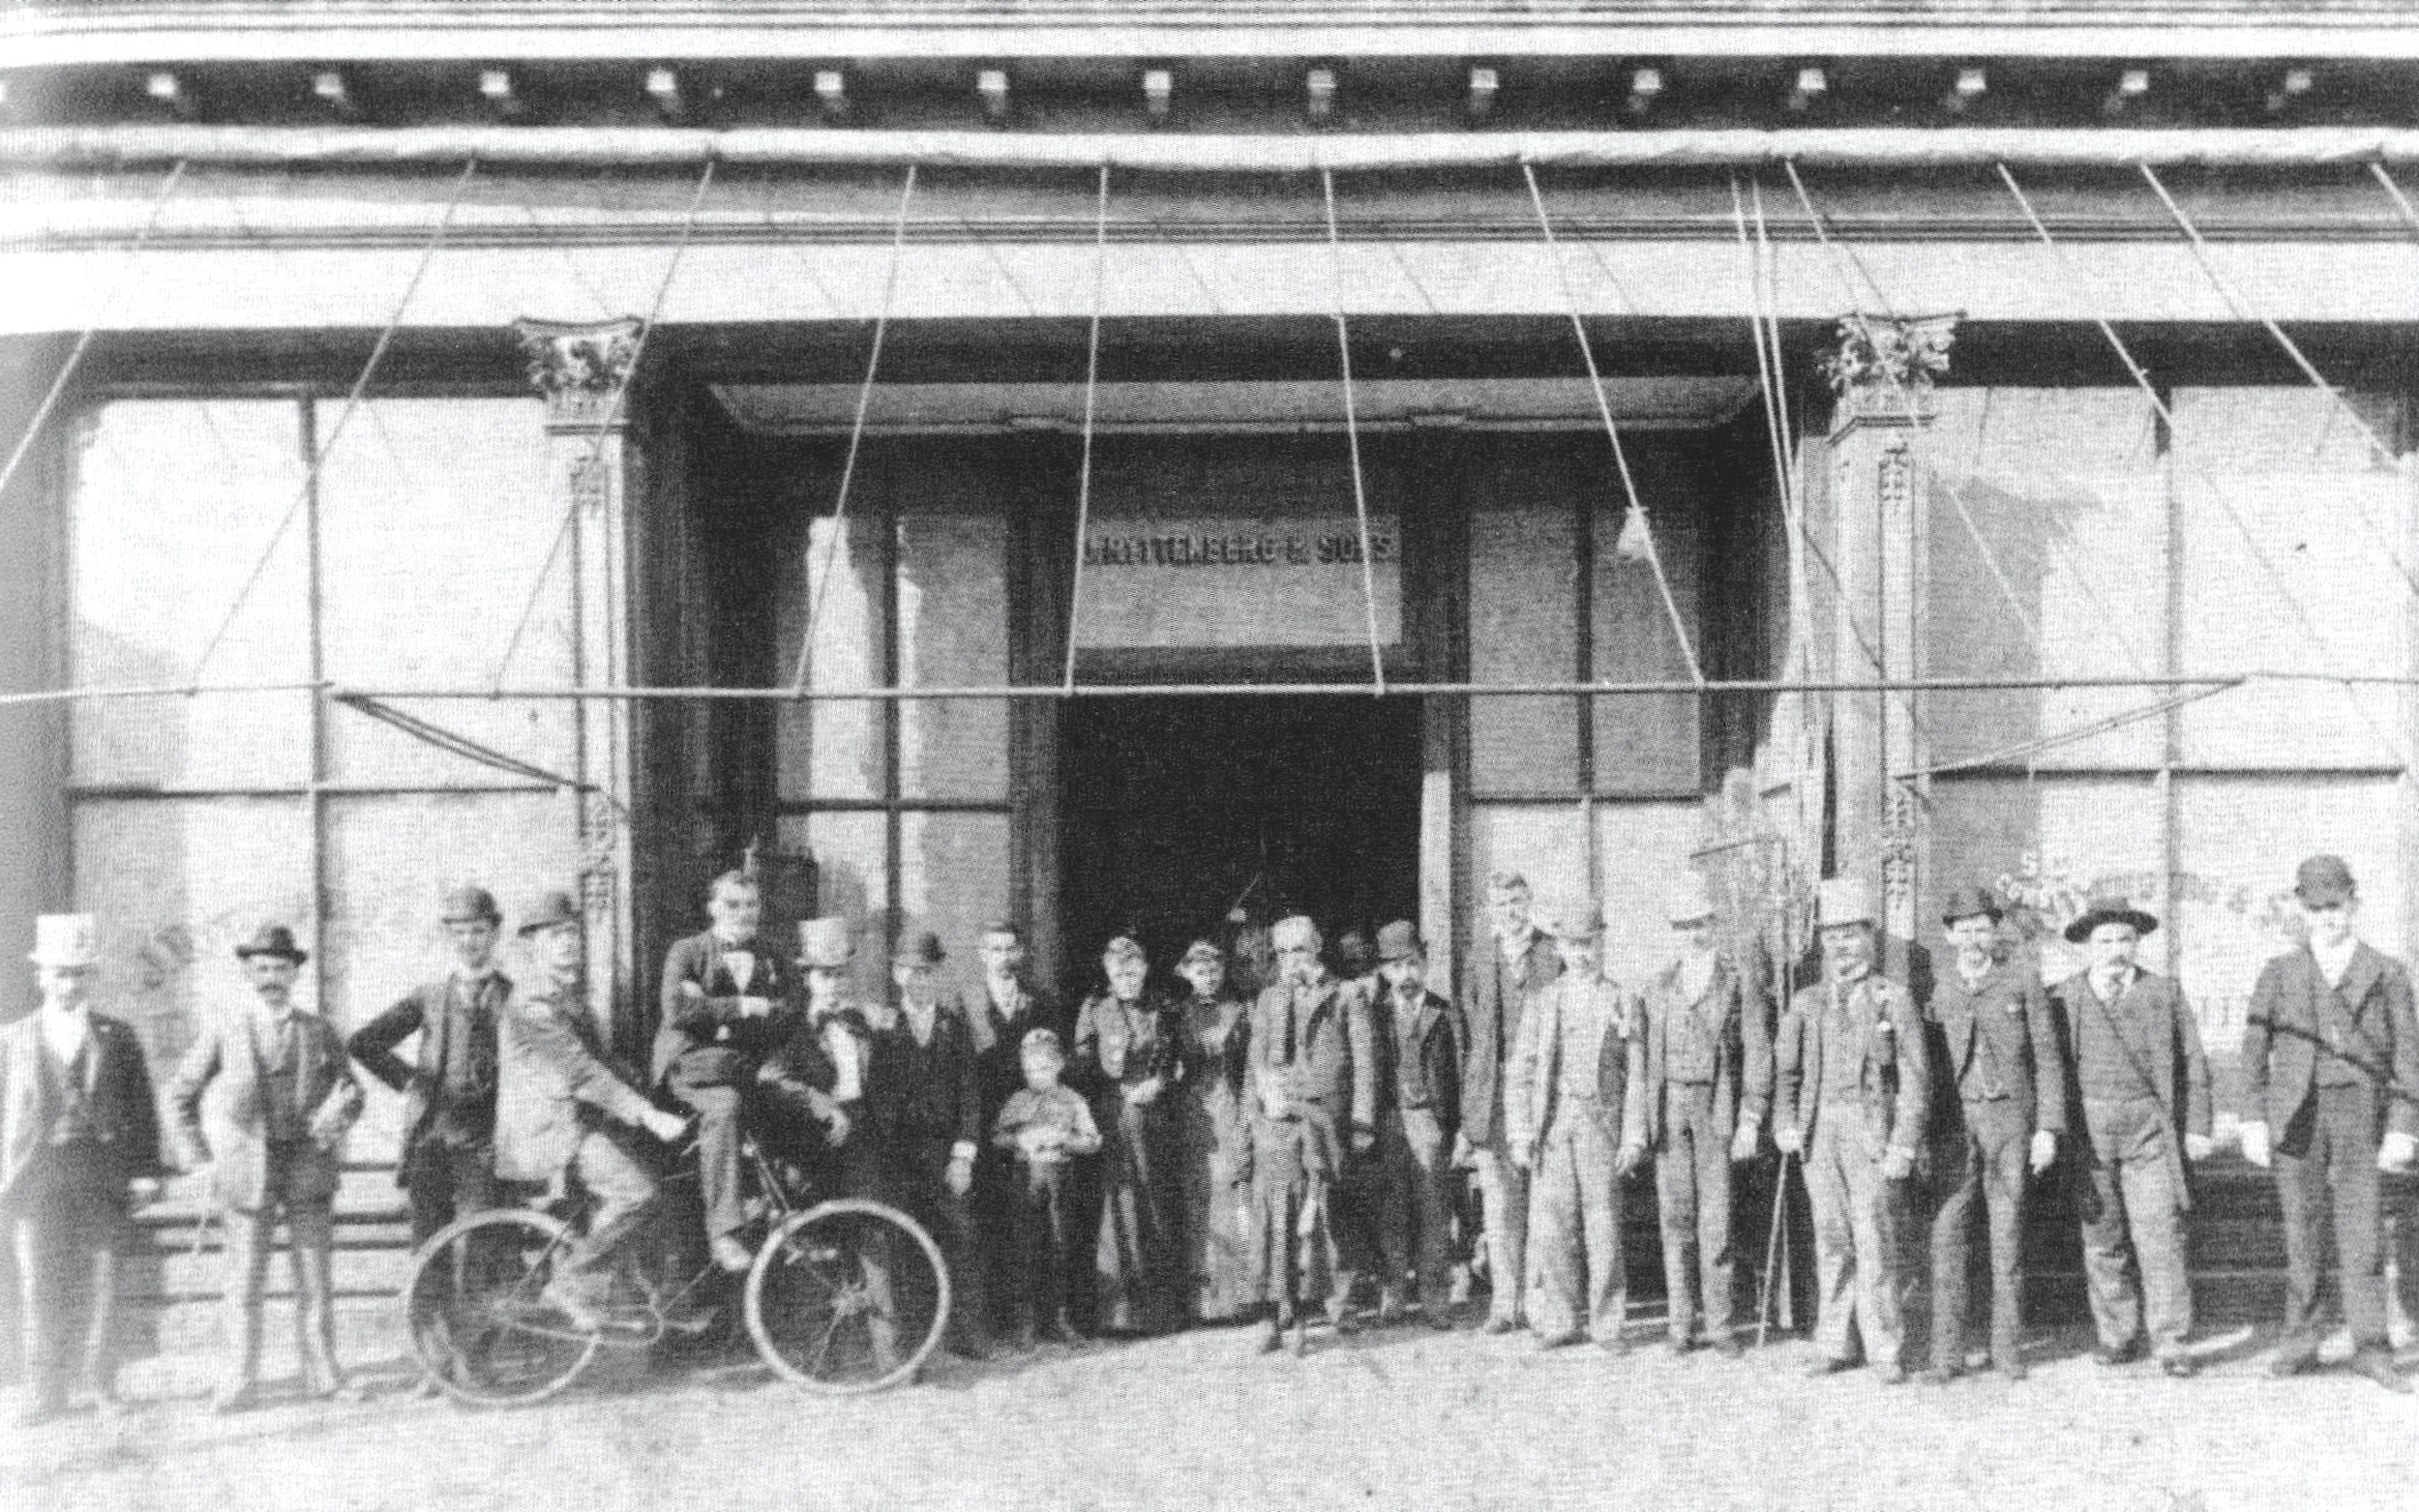 J. Ryttenberg and Sons sold general merchandise at a store built in 1881. It fronted Main and Liberty streets, and the firm also owned a large cotton plantation, steam gin and grist mill. They also owned Sumter Brick Yards, and all the bricks in the store were made by them.